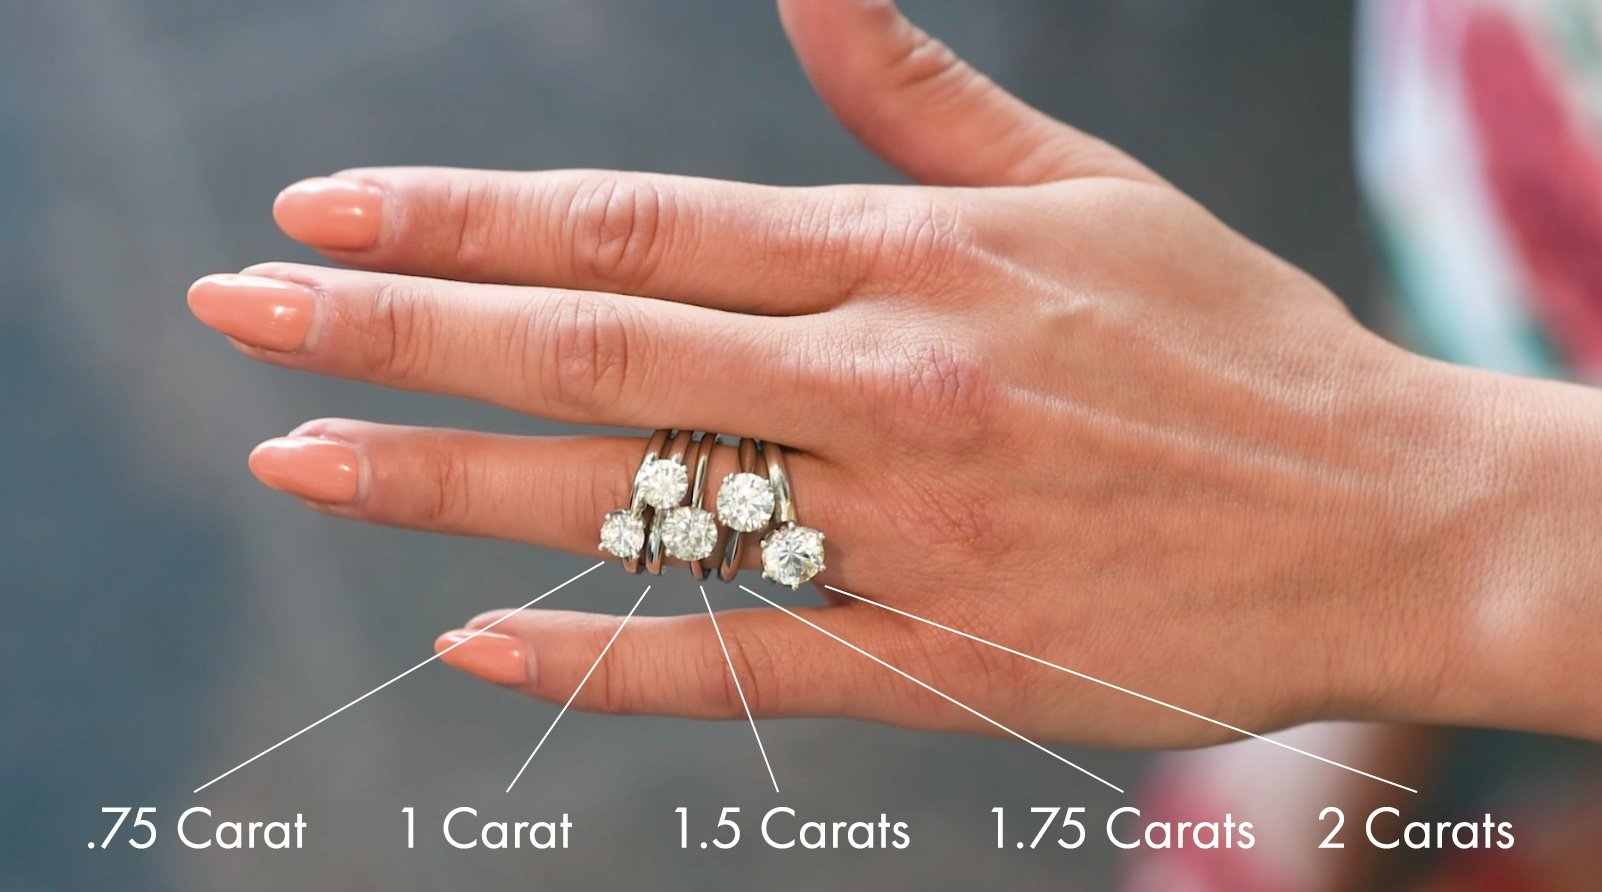 a pin many you your reference and actual engagement in how want carats hand diamond but life need size are carat to decide trying on ring real